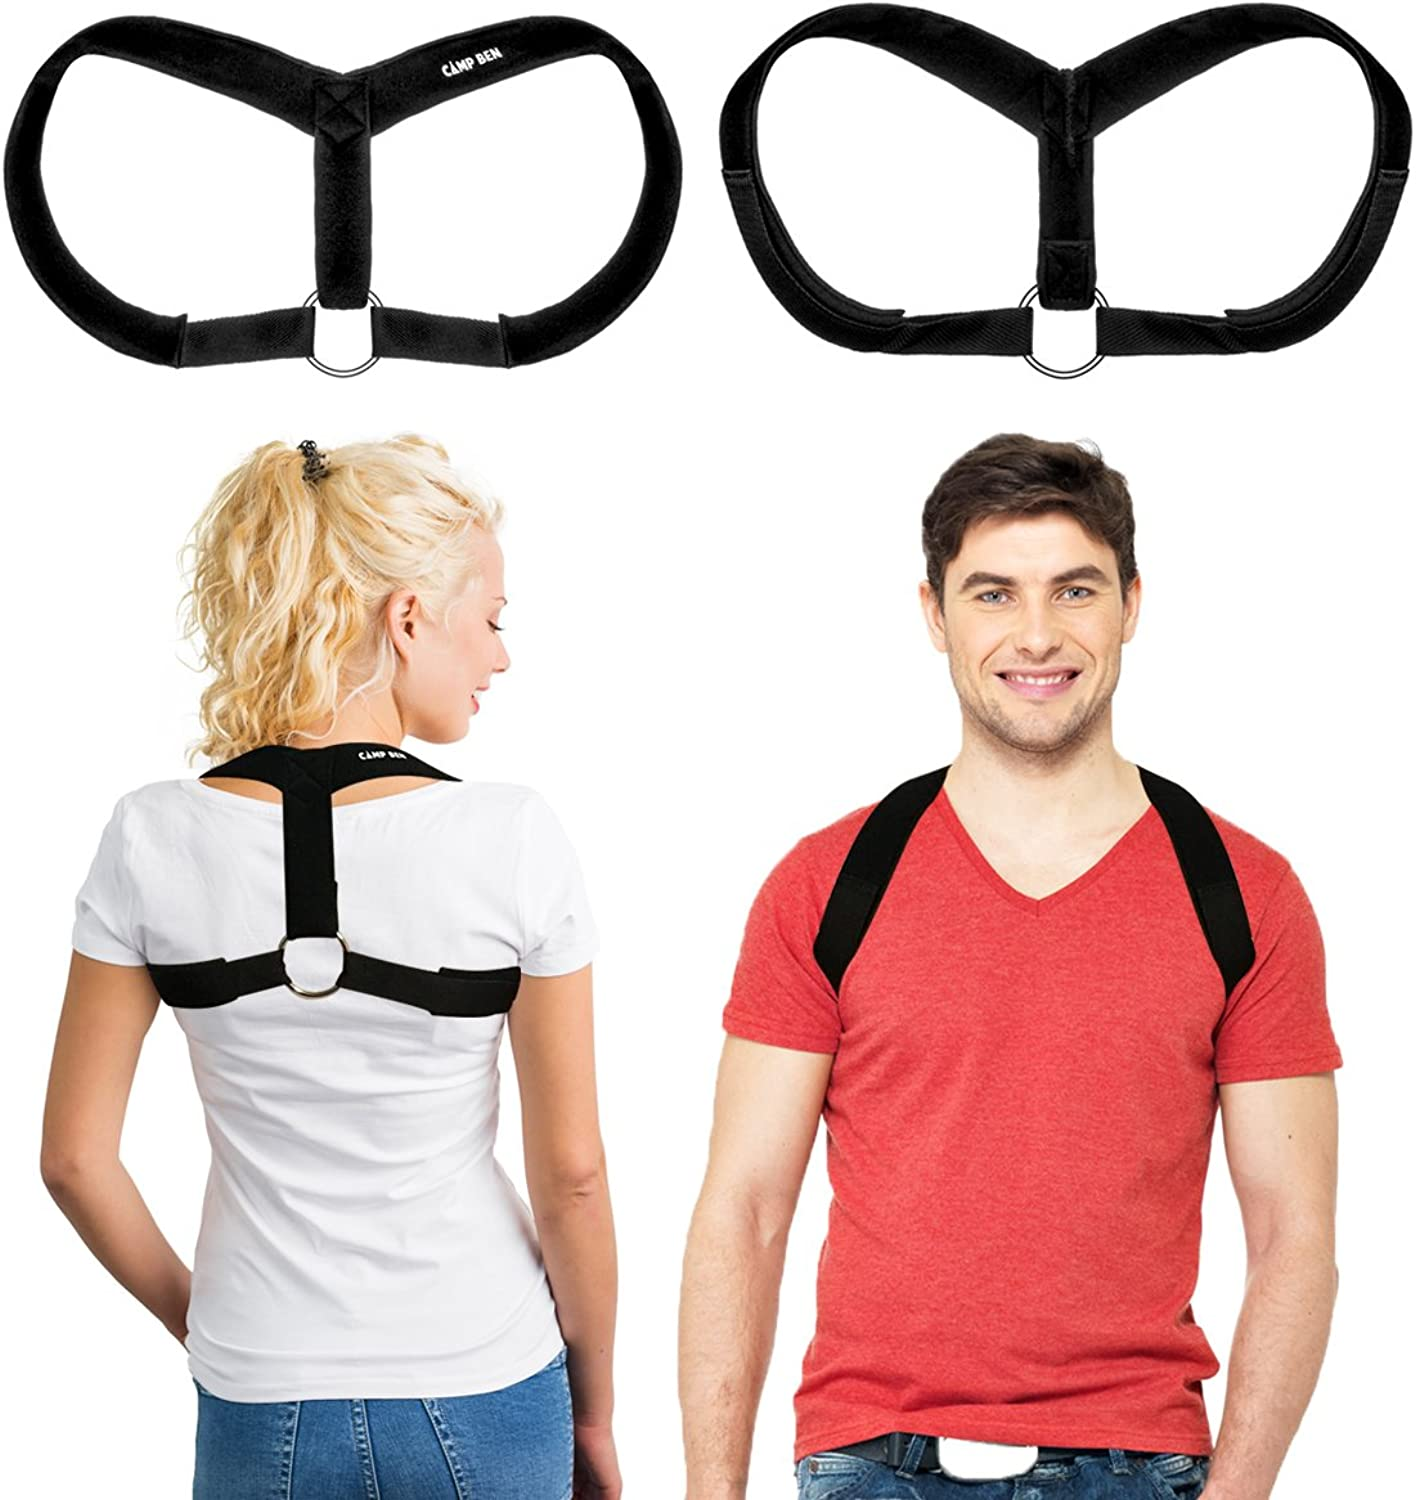 CAMP BEN Posture Corrector for Women and Men (Large 39-46 inches) Adjustable Back and Shoulder Clavicle Brace - Support for Back Pain and Broken Collarbone - Bonus Yoga Strap w Posture Exercises